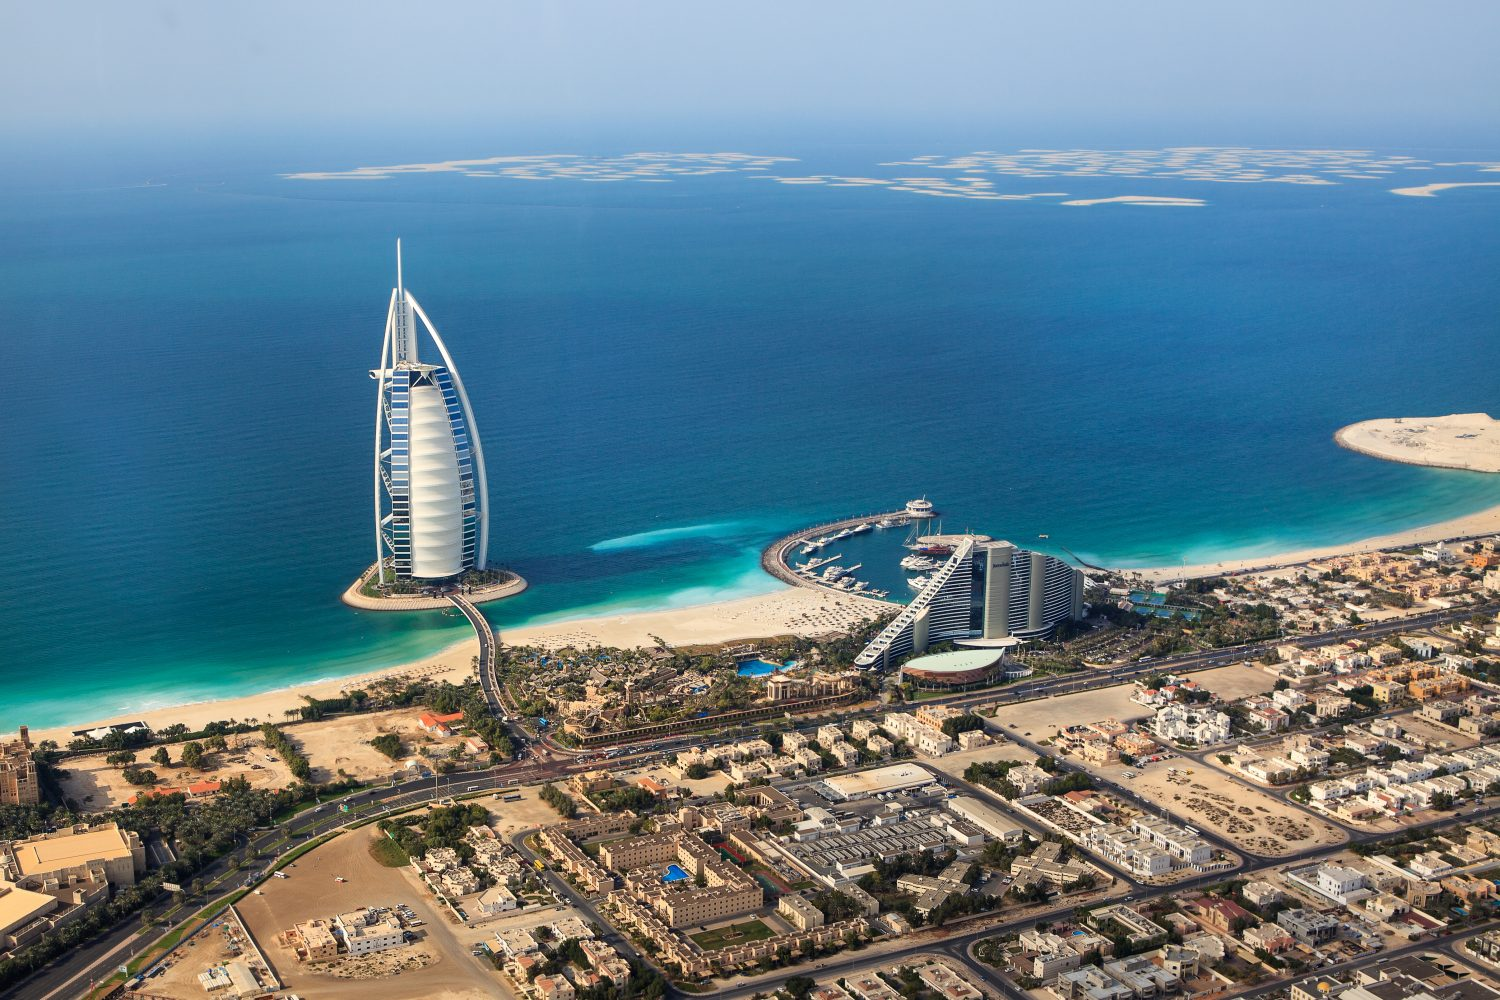 Move to Dubail - Dubai, UAE. Burj Al Arab fr